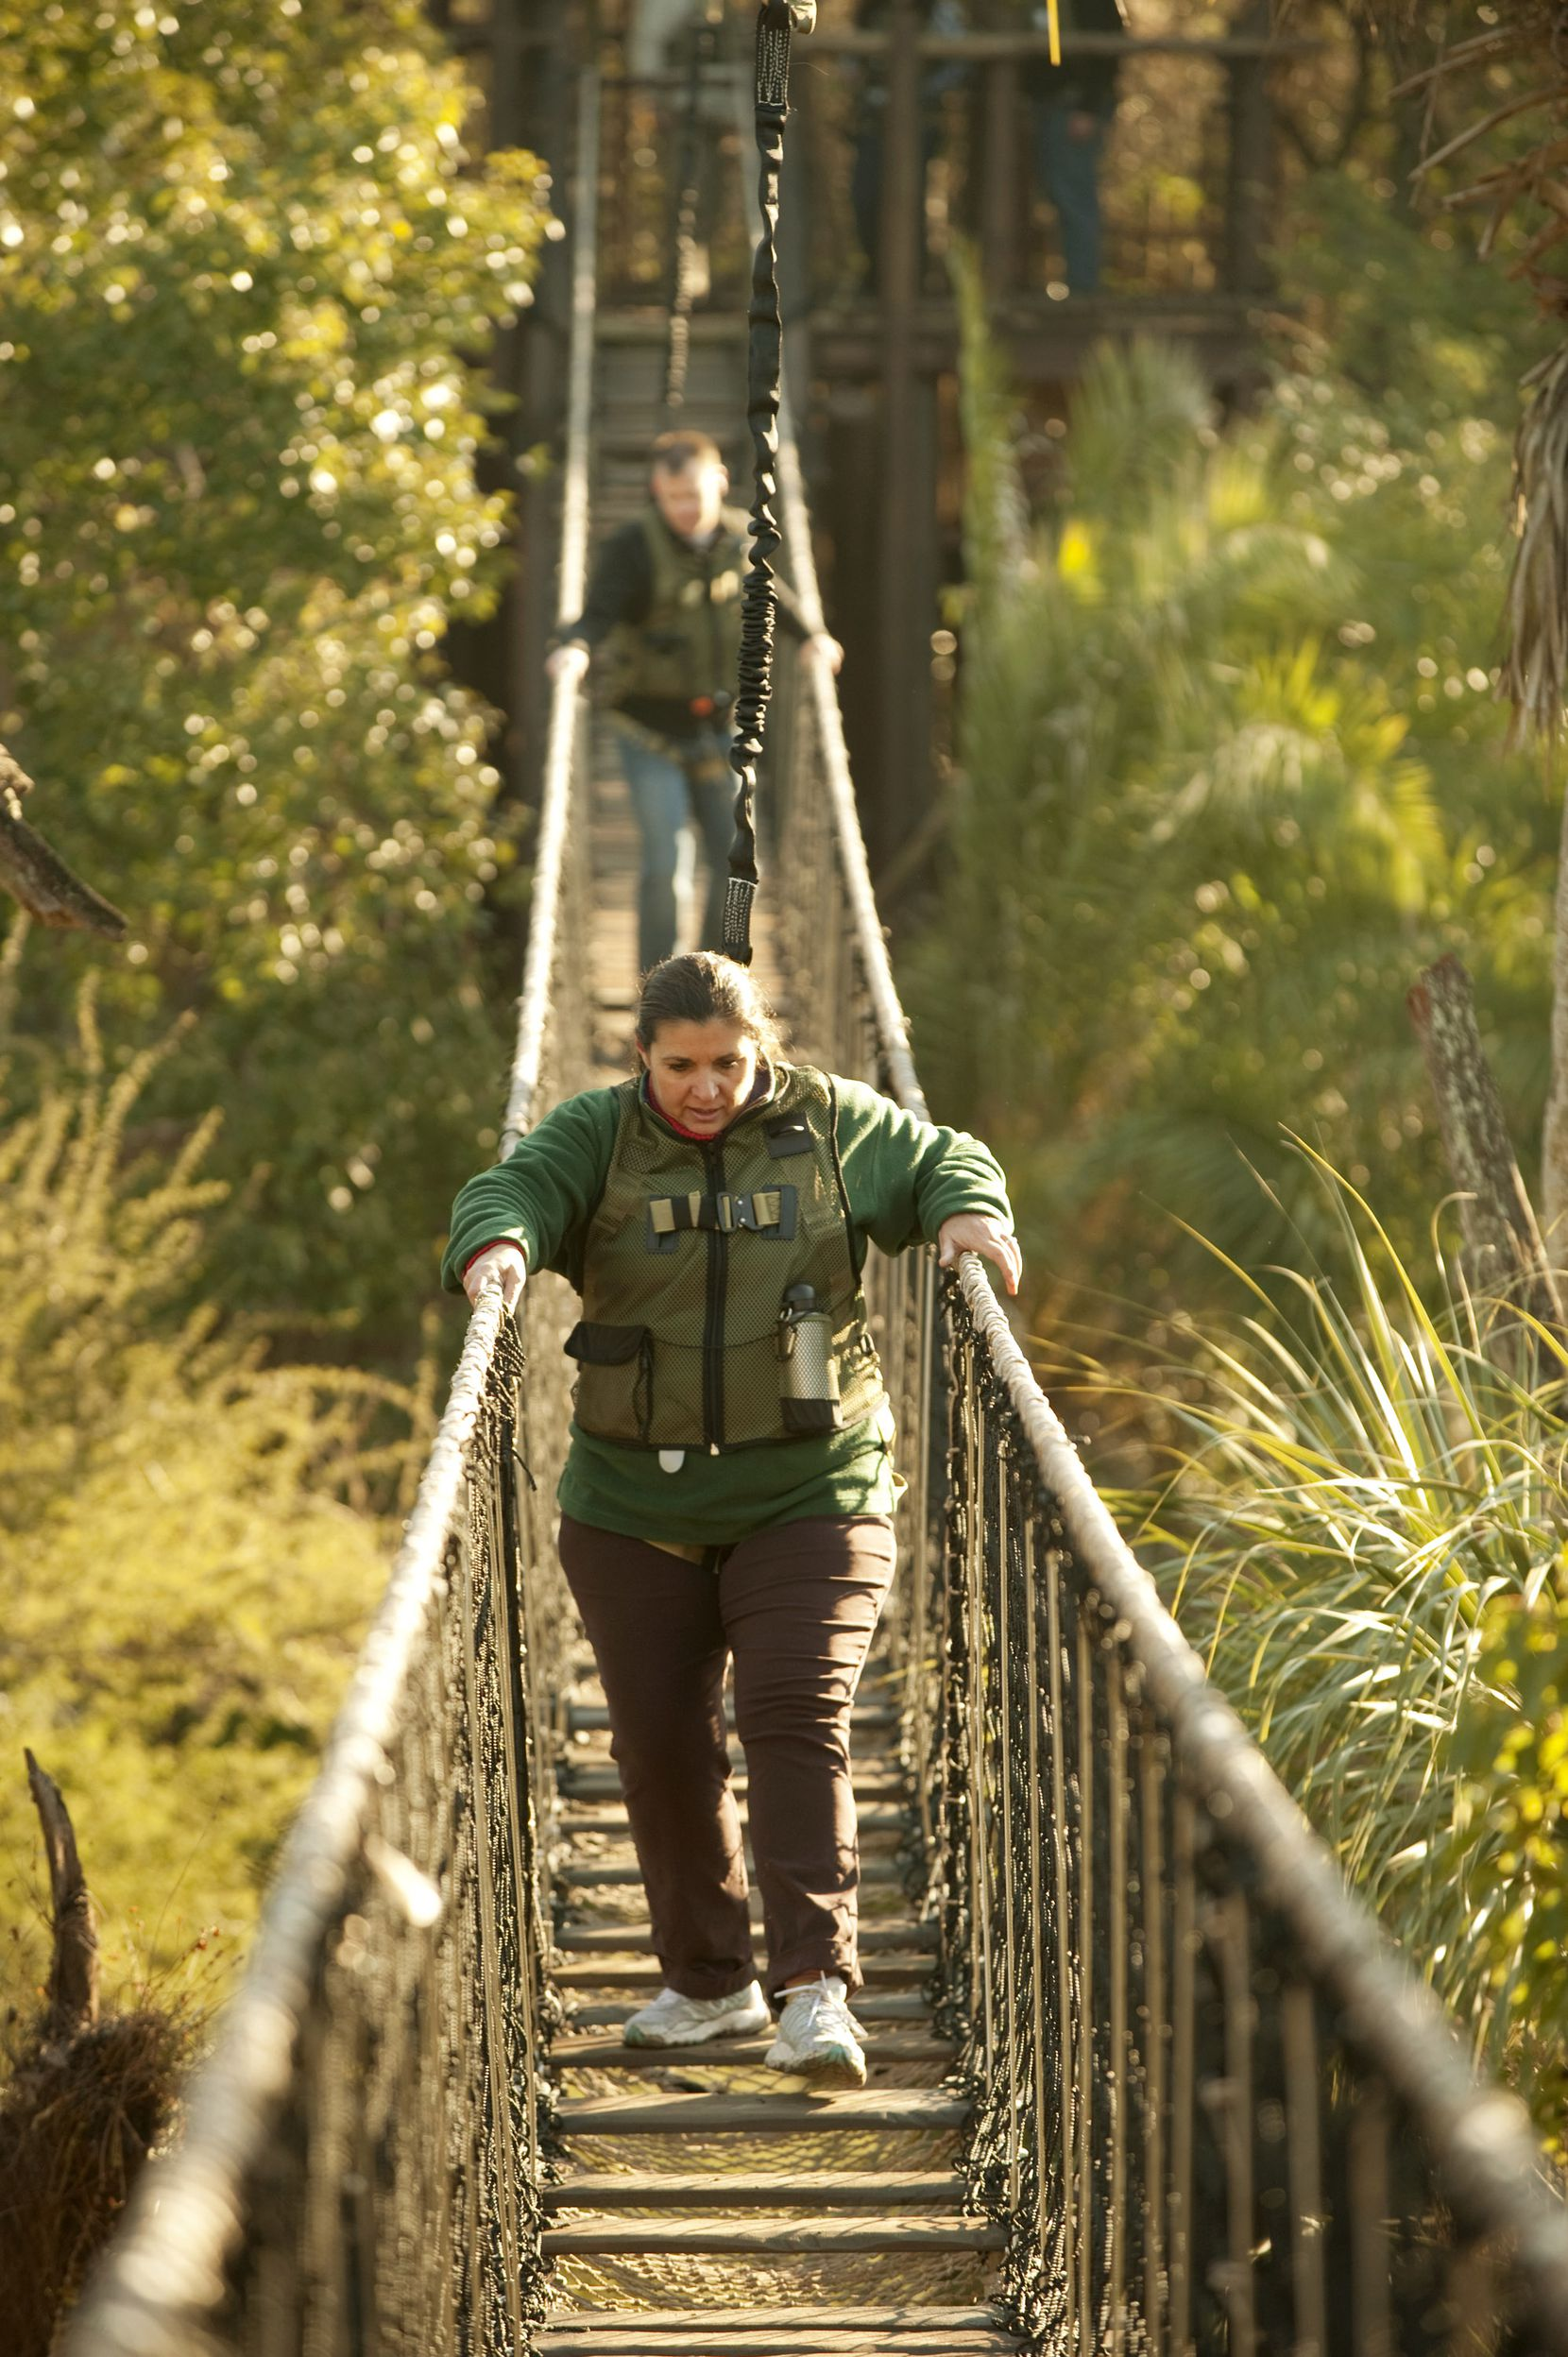 Guests can cross a rope bridge hovering over crocodiles during the three-hour Wild Africa Trek ($189 to $249 per person) through Animal Kingdom's version of an African savanna.